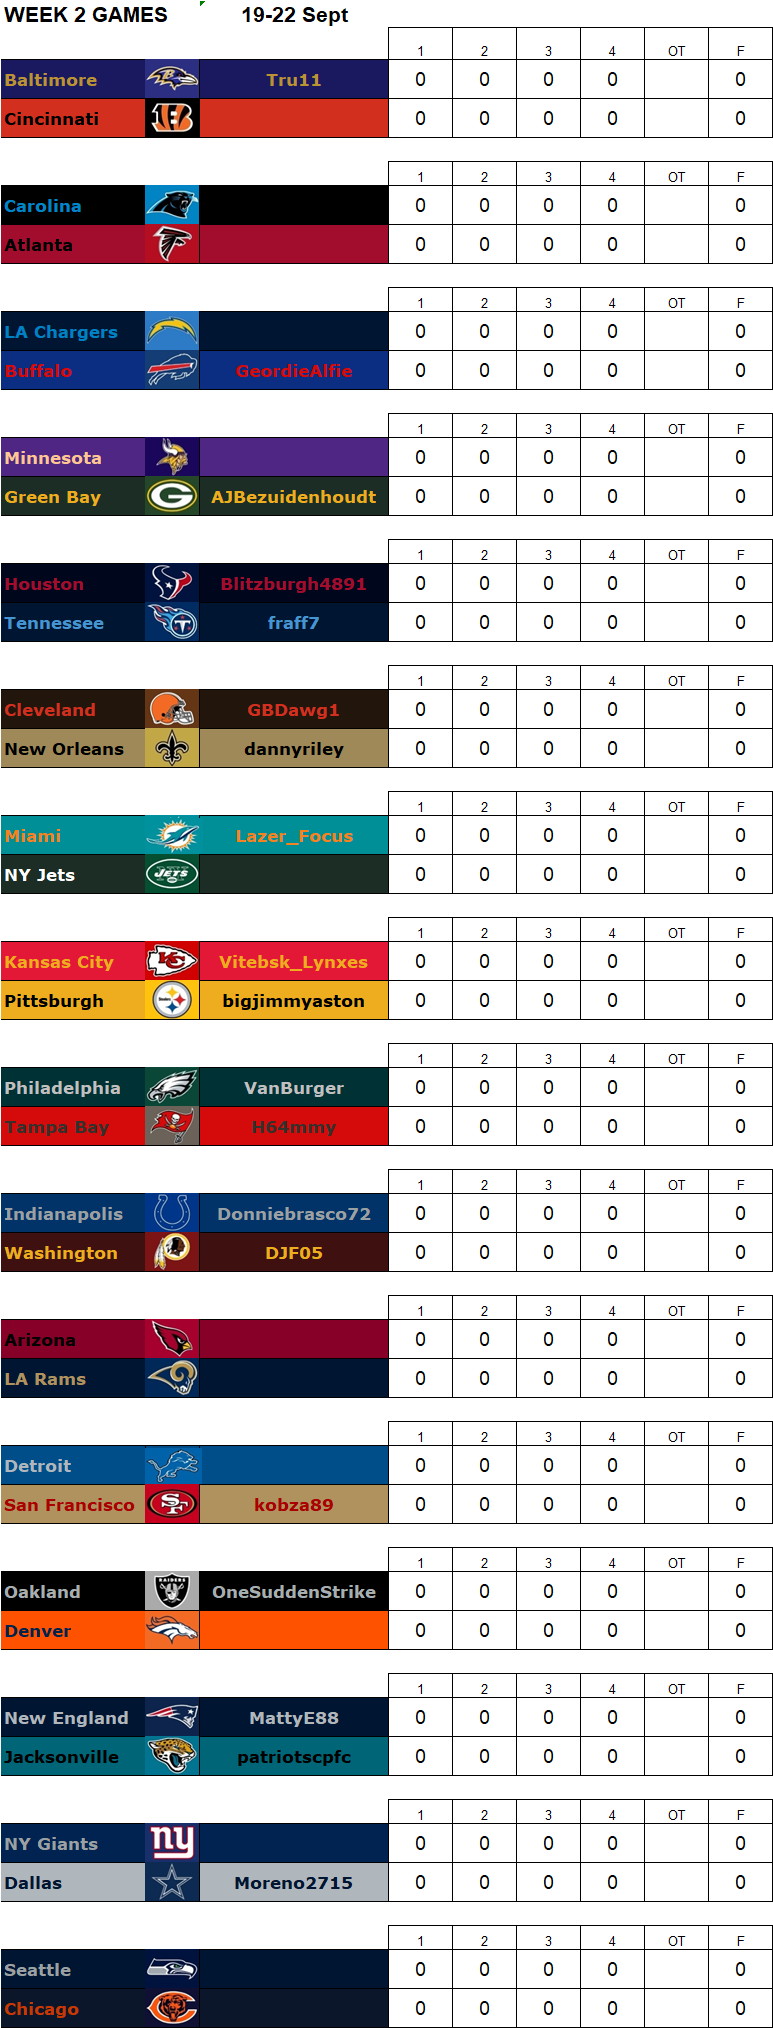 Week 2 Regular Season Matchups, 19-22 September **Amended** W2g11